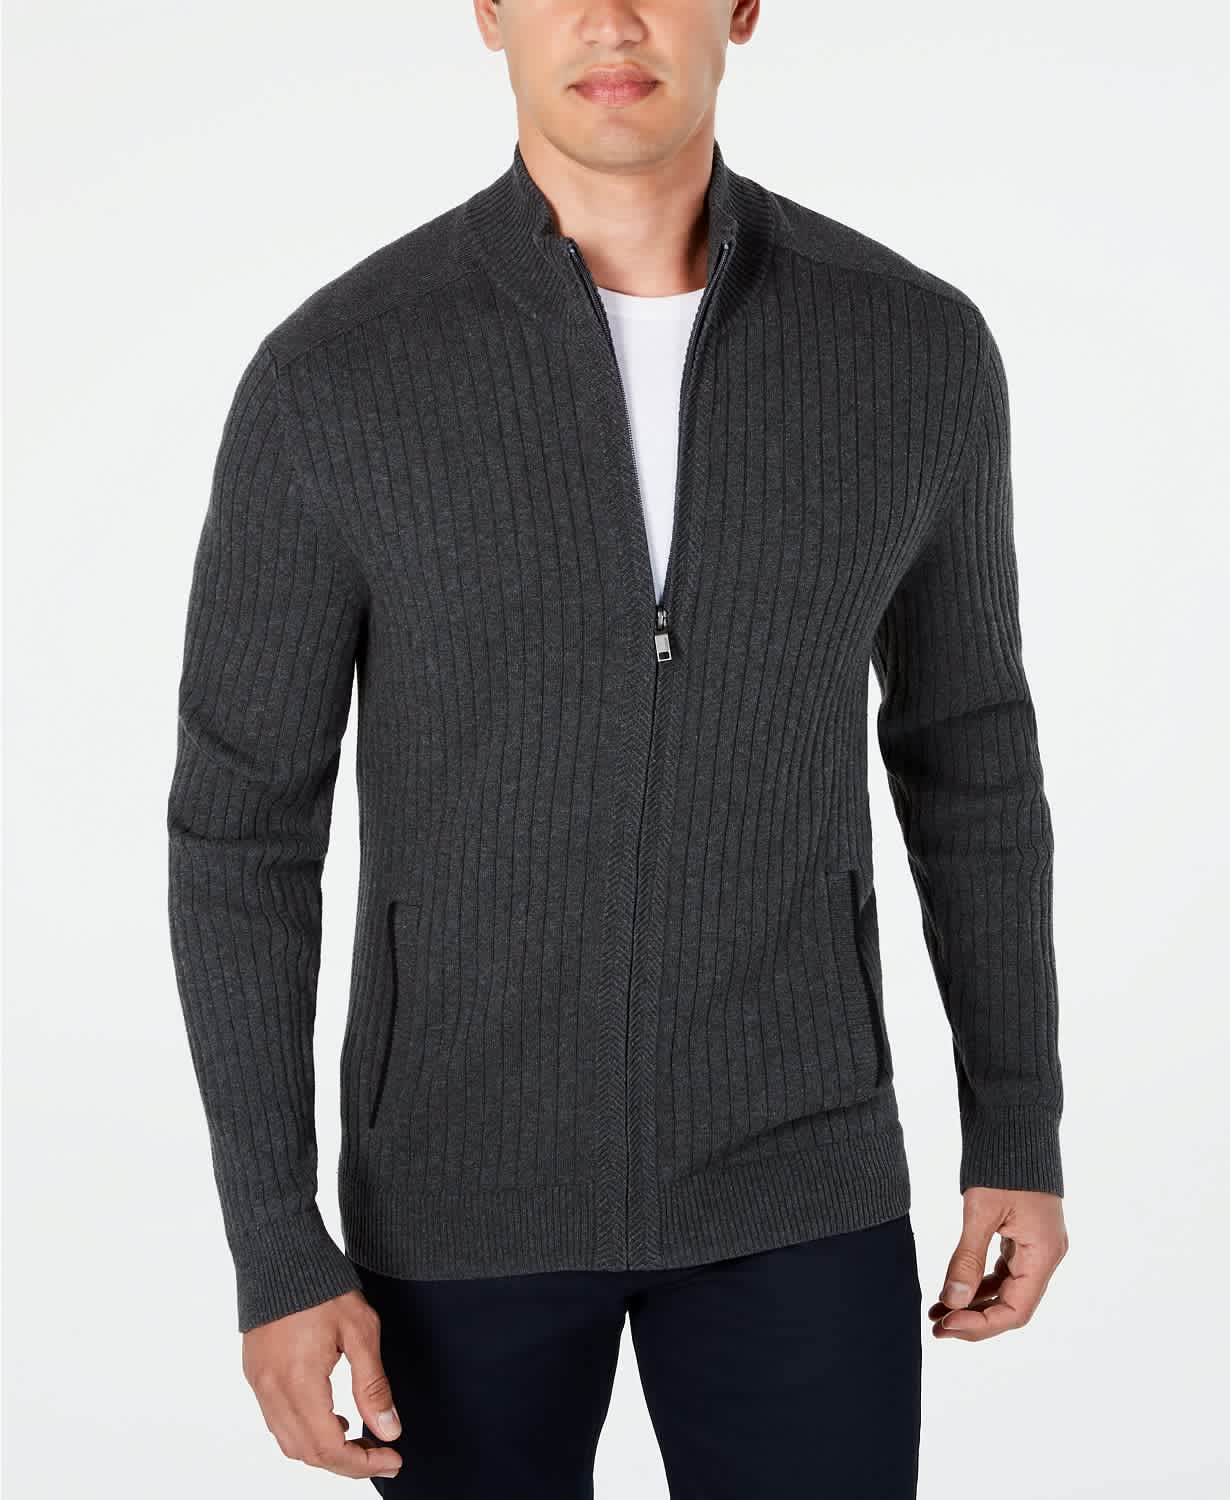 Alfani Men's Ribbed Full-Zip Sweater